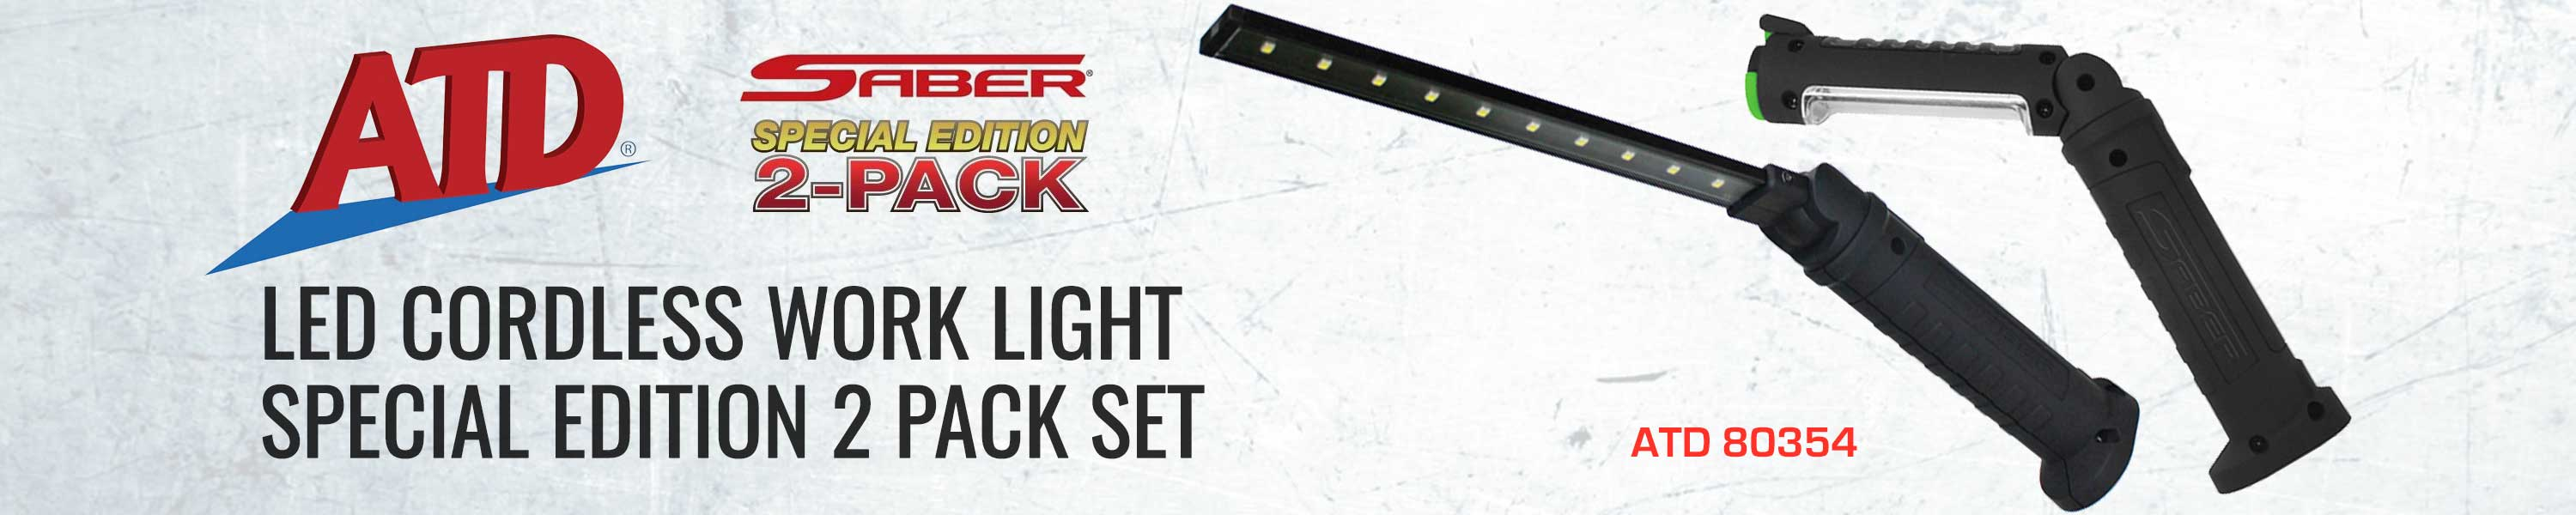 ATD Tools 80354 LED Cordless Work Light Special Edition 2 Pack Set